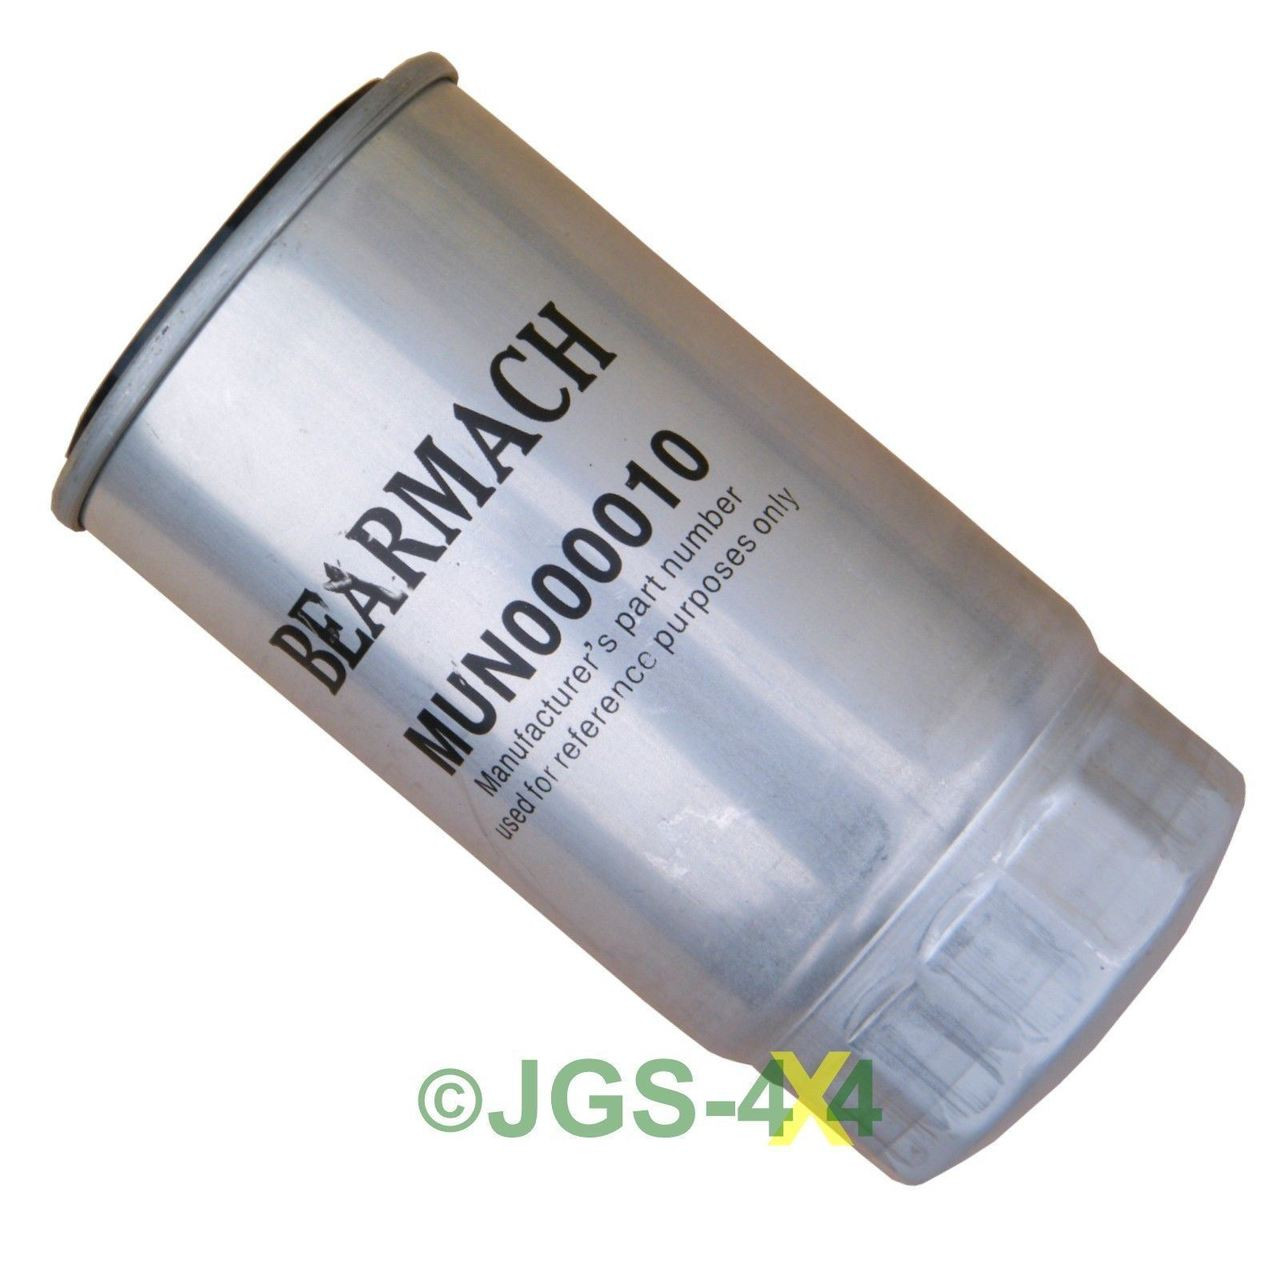 small resolution of land rover freelander 1 diesel fuel filter 2 0 td4 bmw engine mun000010